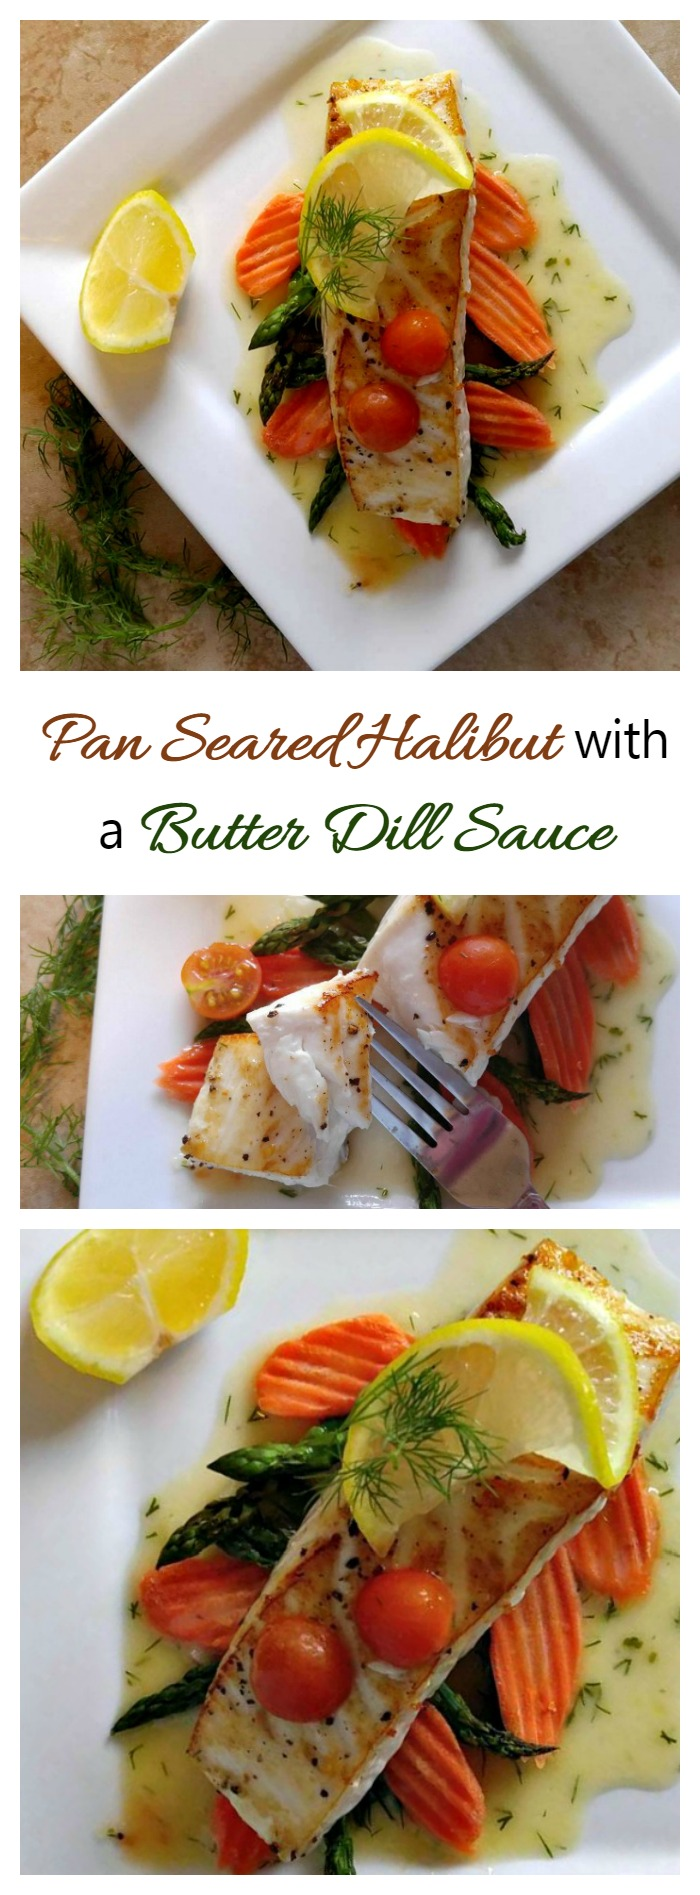 This Pan seared halibut with a butter dill sauce recipe is delicate and flavorful. The sauce is made before cooking the fish to make sure that the recipe turns out well every time. #ad #IC #AskForAlaska